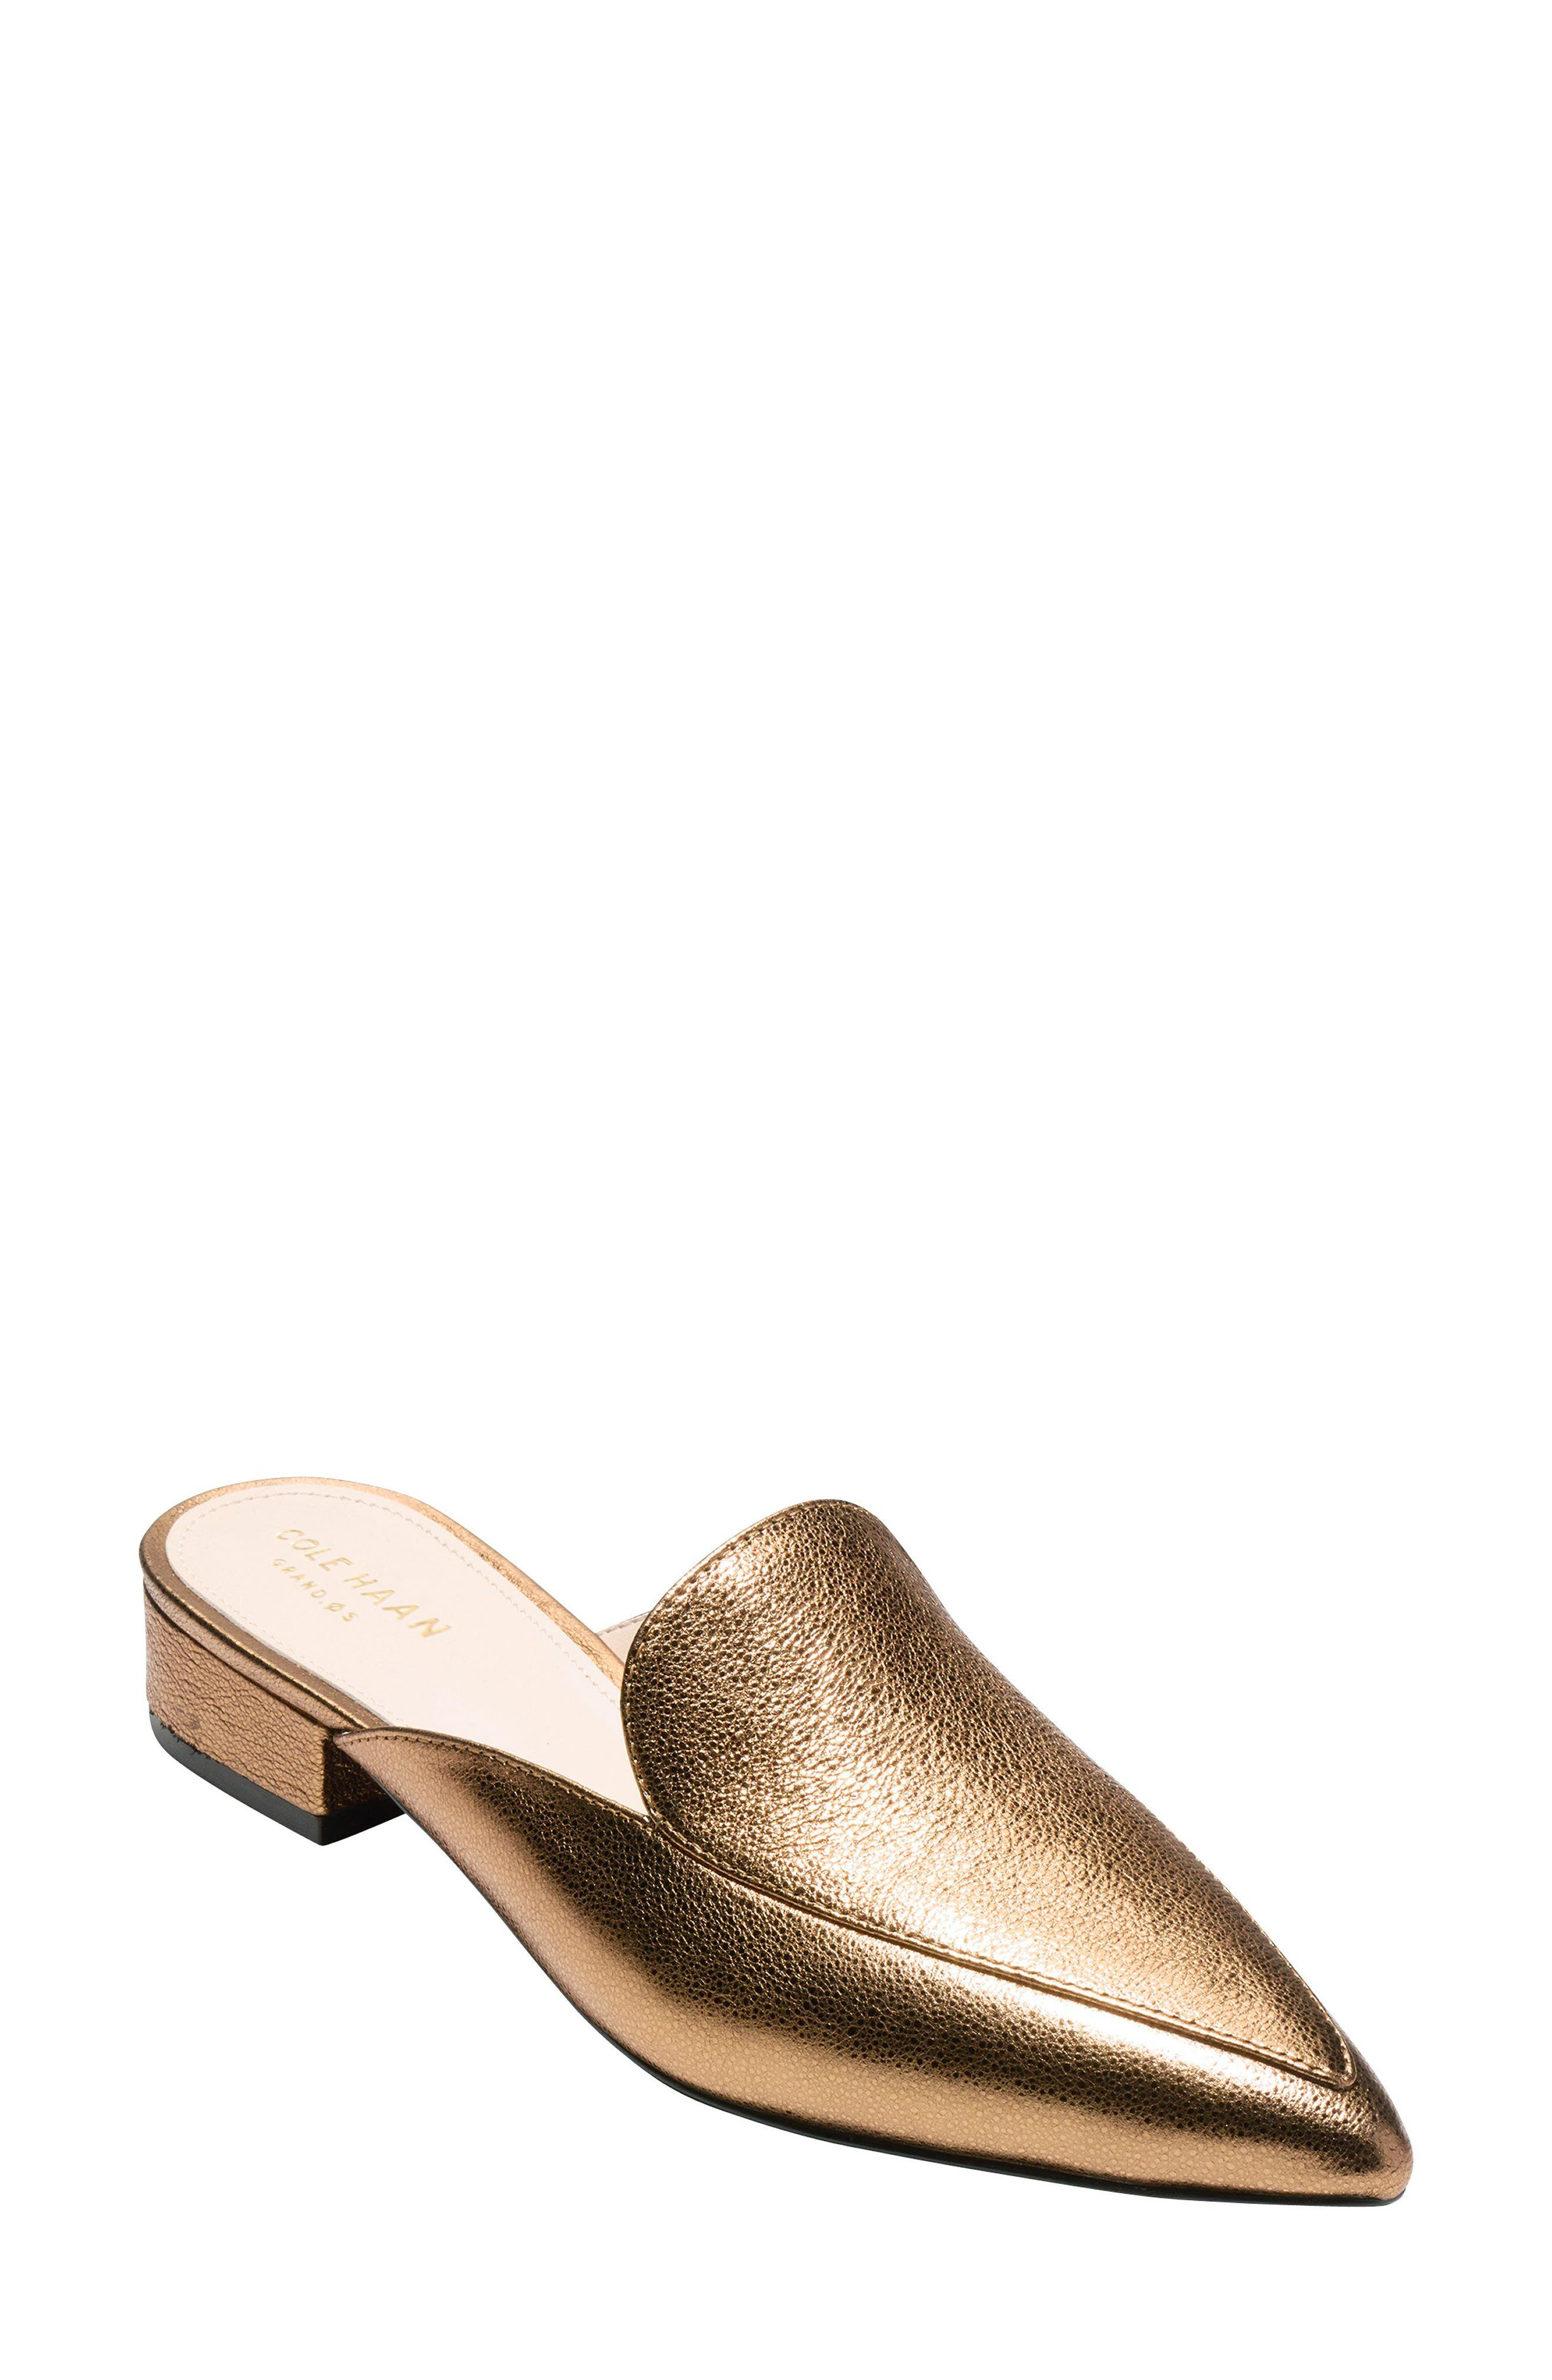 58848b330e1 Cole Haan Piper Loafer Mule In Misty Rose Leather